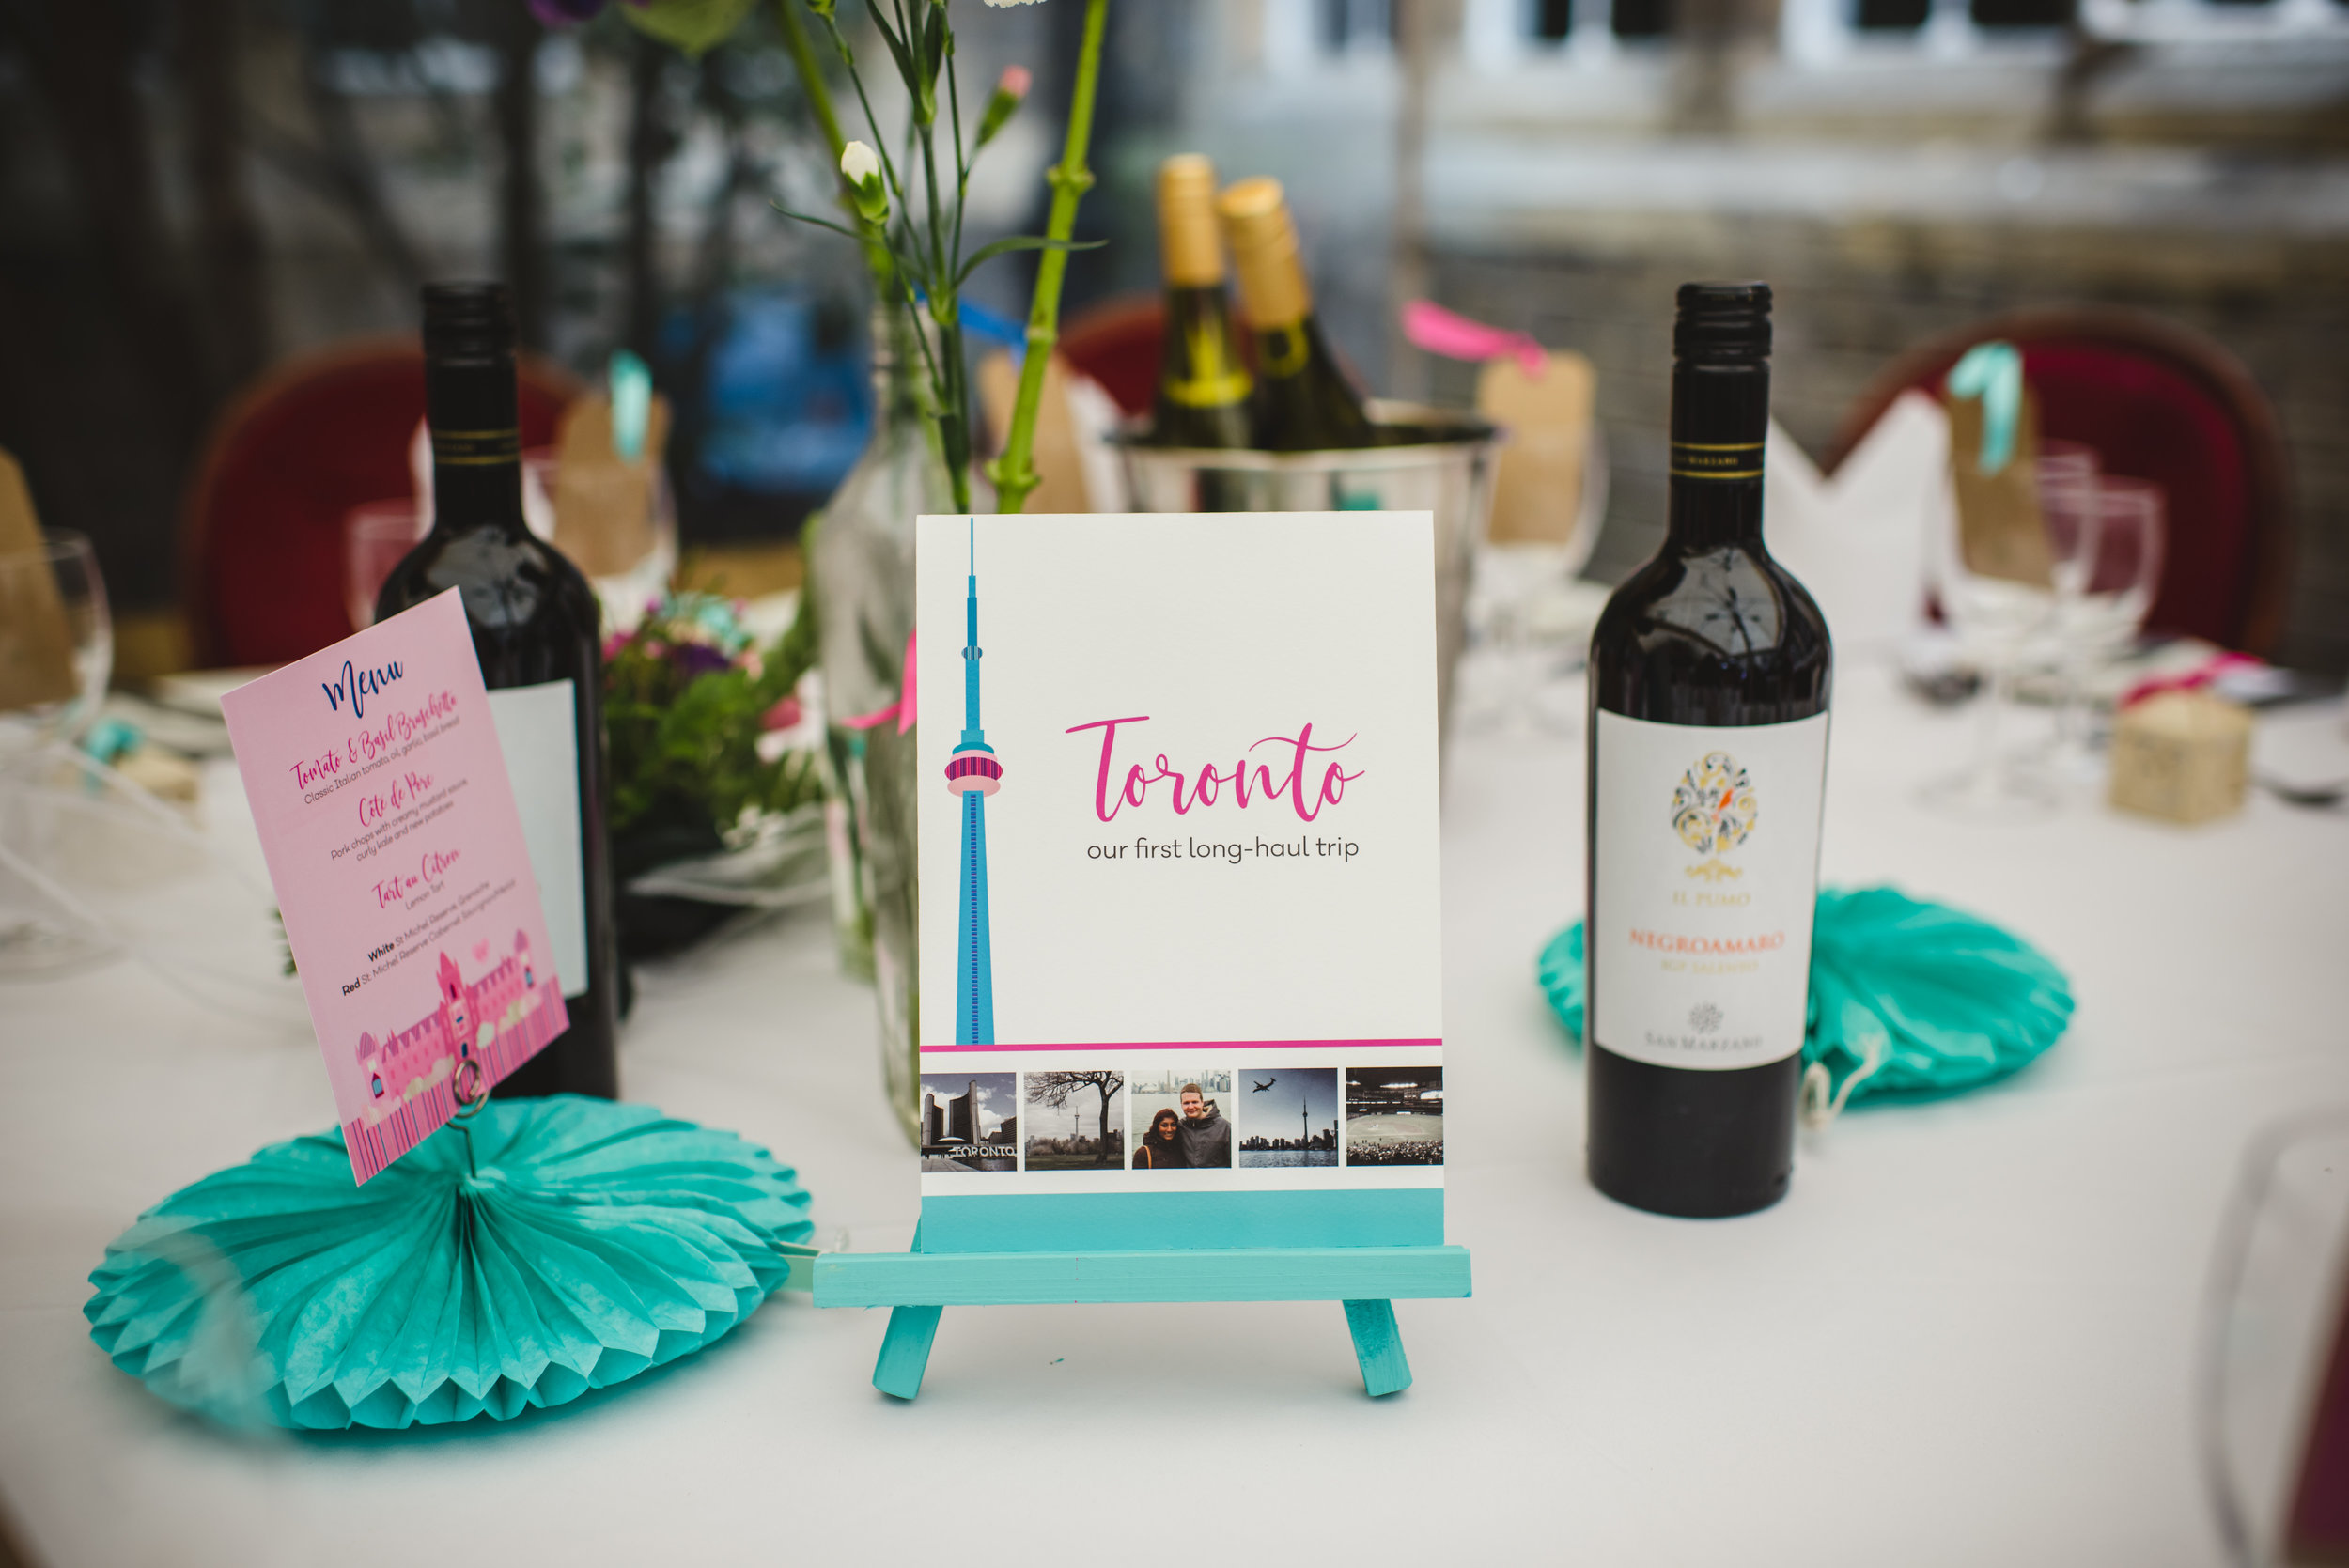 Travel-themed wedding table name illustrations by South Island Art